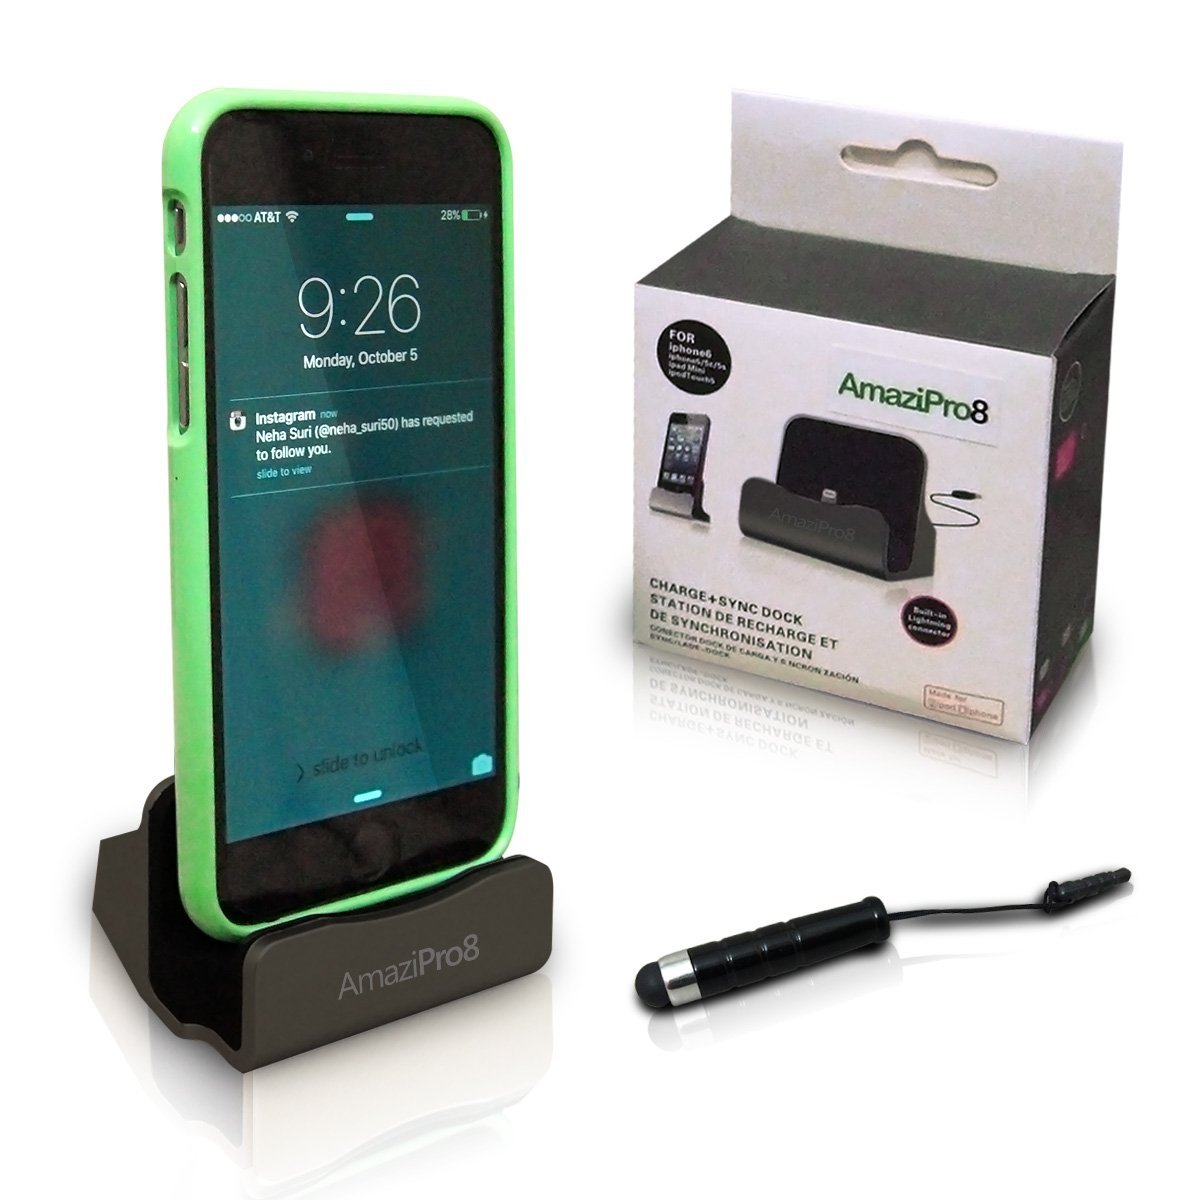 Amazipro8 Iphone Charger Docking Station Stylus Dust Plug Best Usb Lightning Cable Charge Sync Stand Cradle Charging Dock Stations For Le 6 Plus 6s